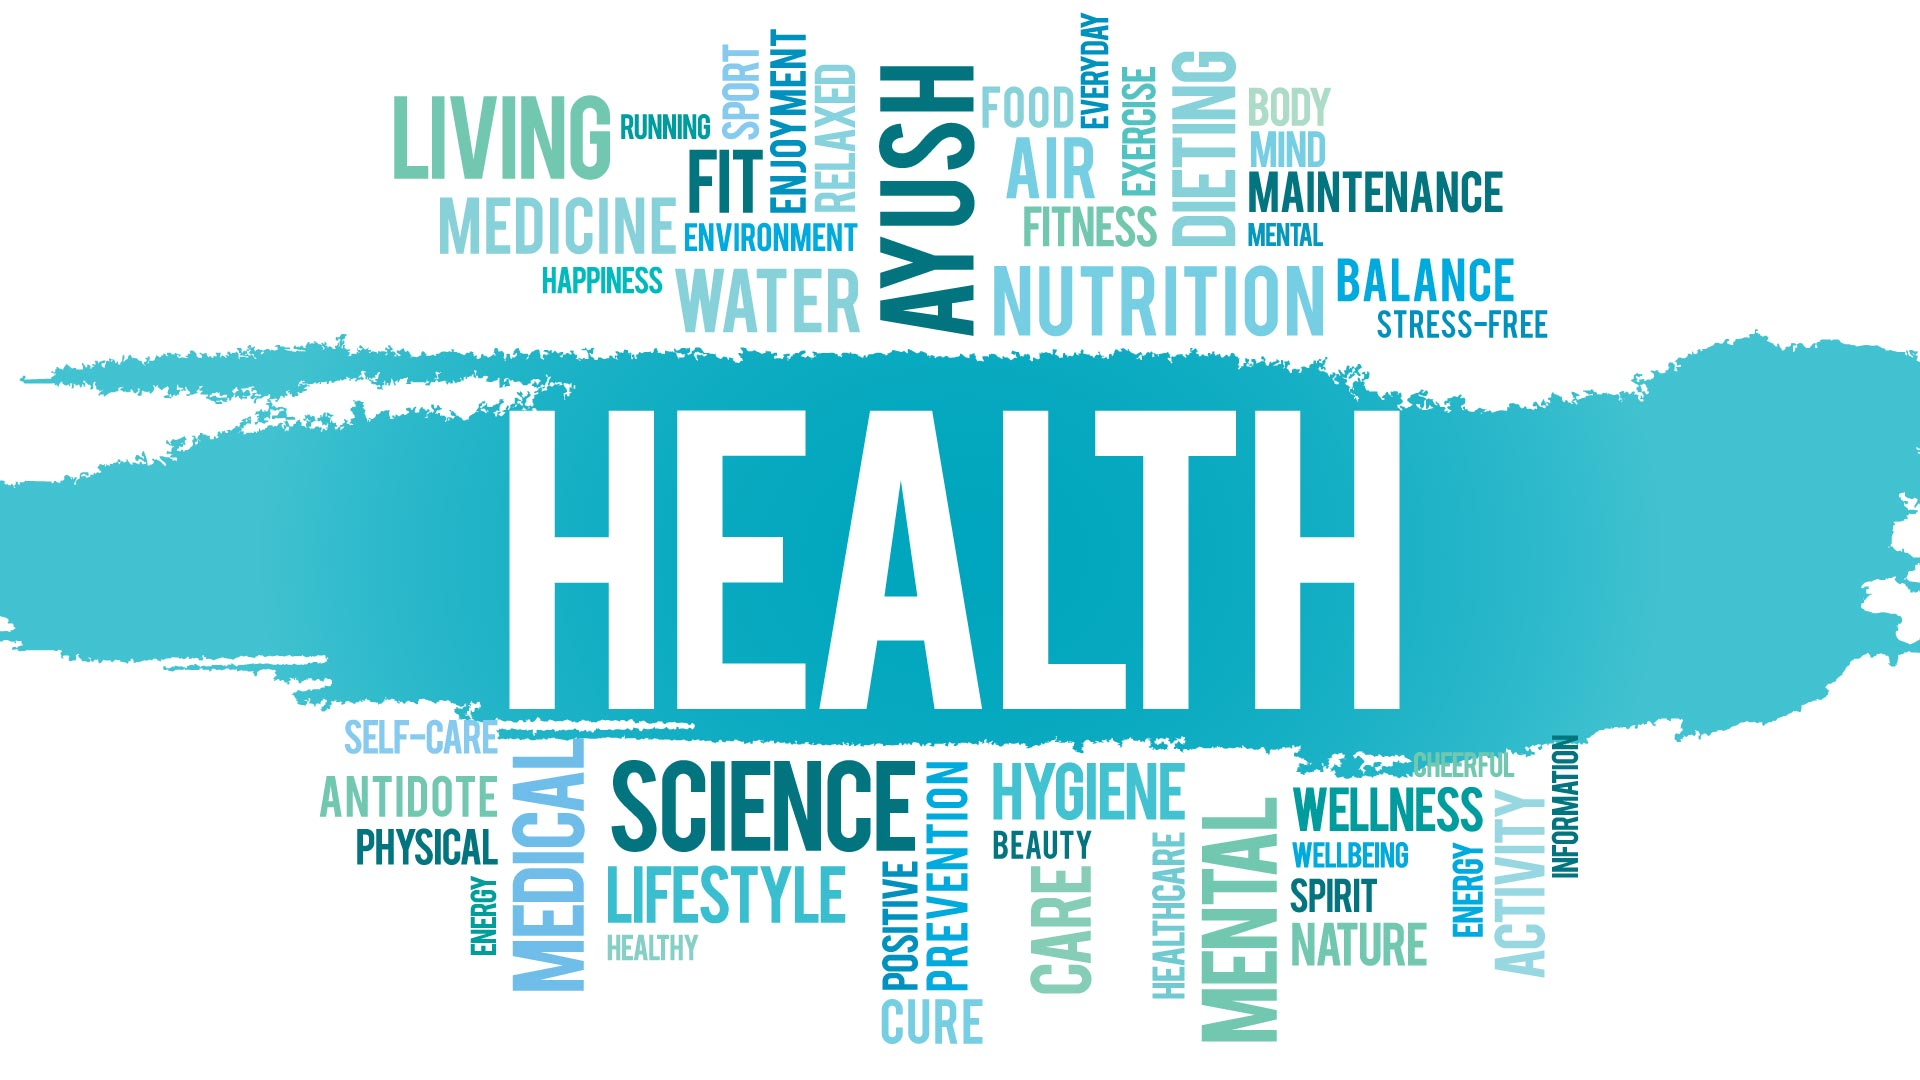 Health News: Medical Research, Top and Trending Stories From Our  Award-Winning Journalists - Everyday Health